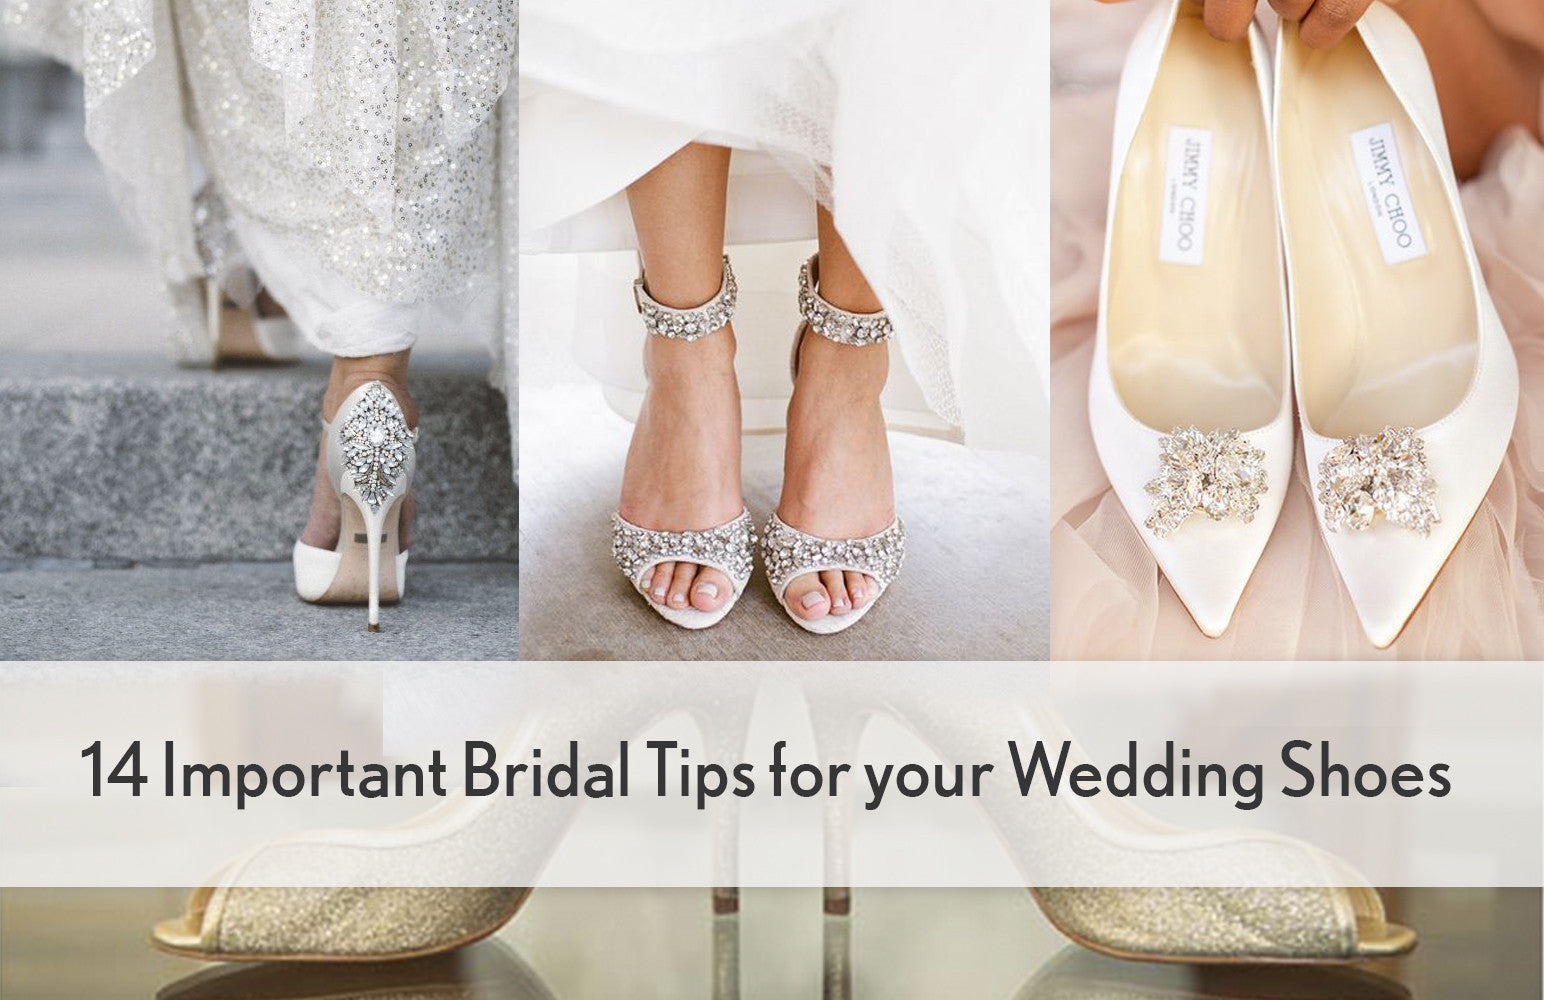 13 Important Bridal Tips for Your Wedding Shoes